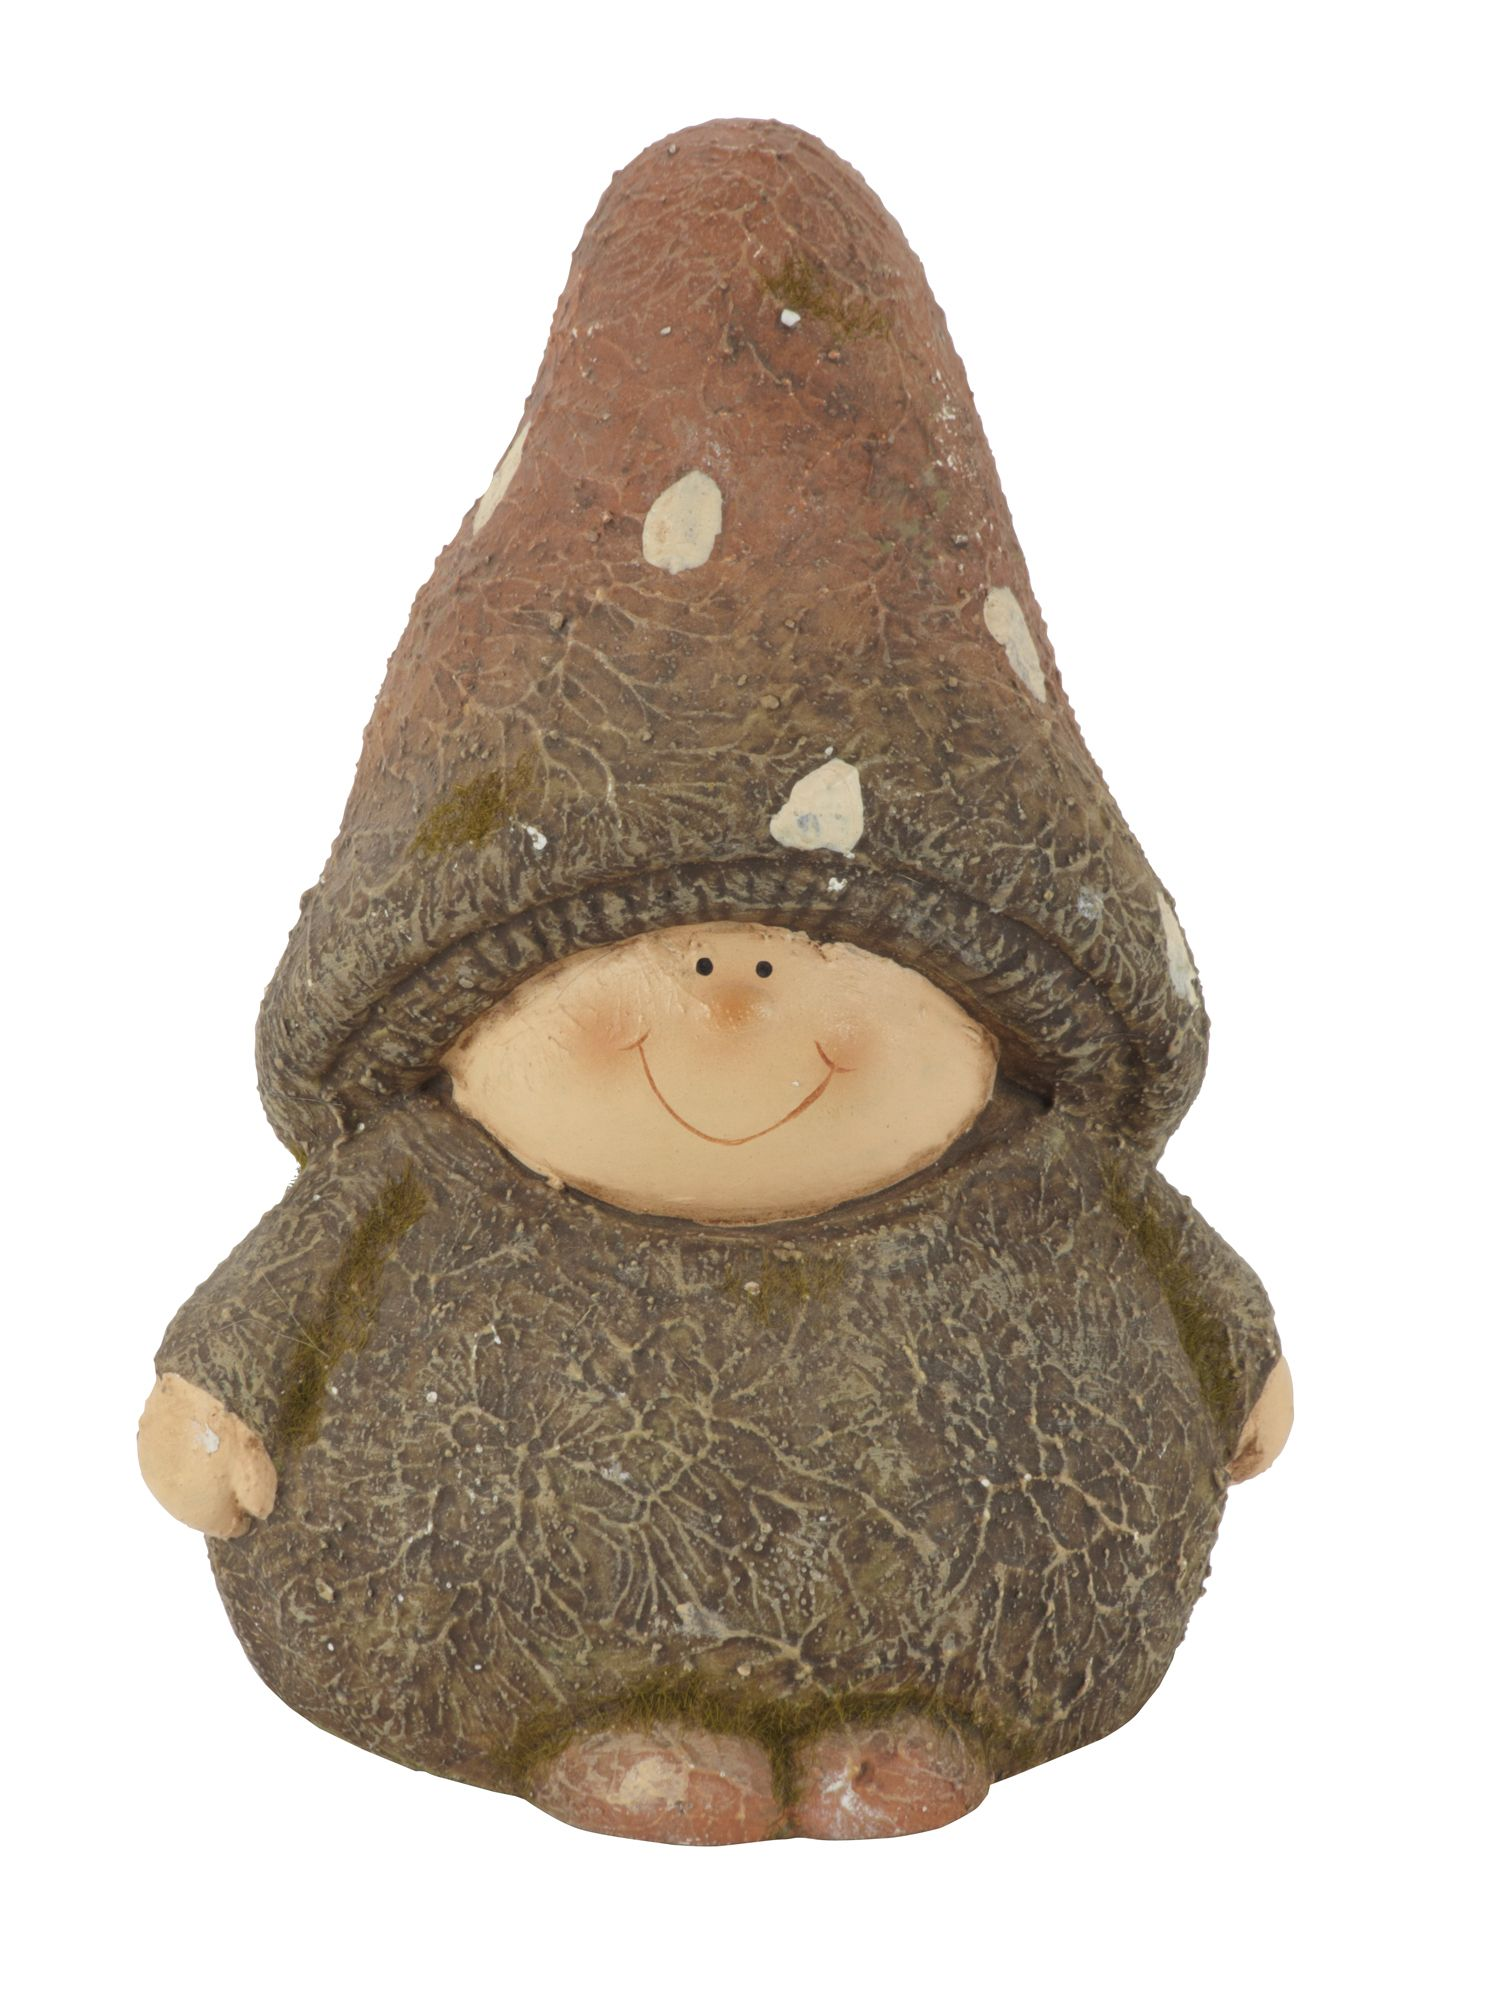 In My Garden Gnome Ornament | Departments | DIY at B&Q